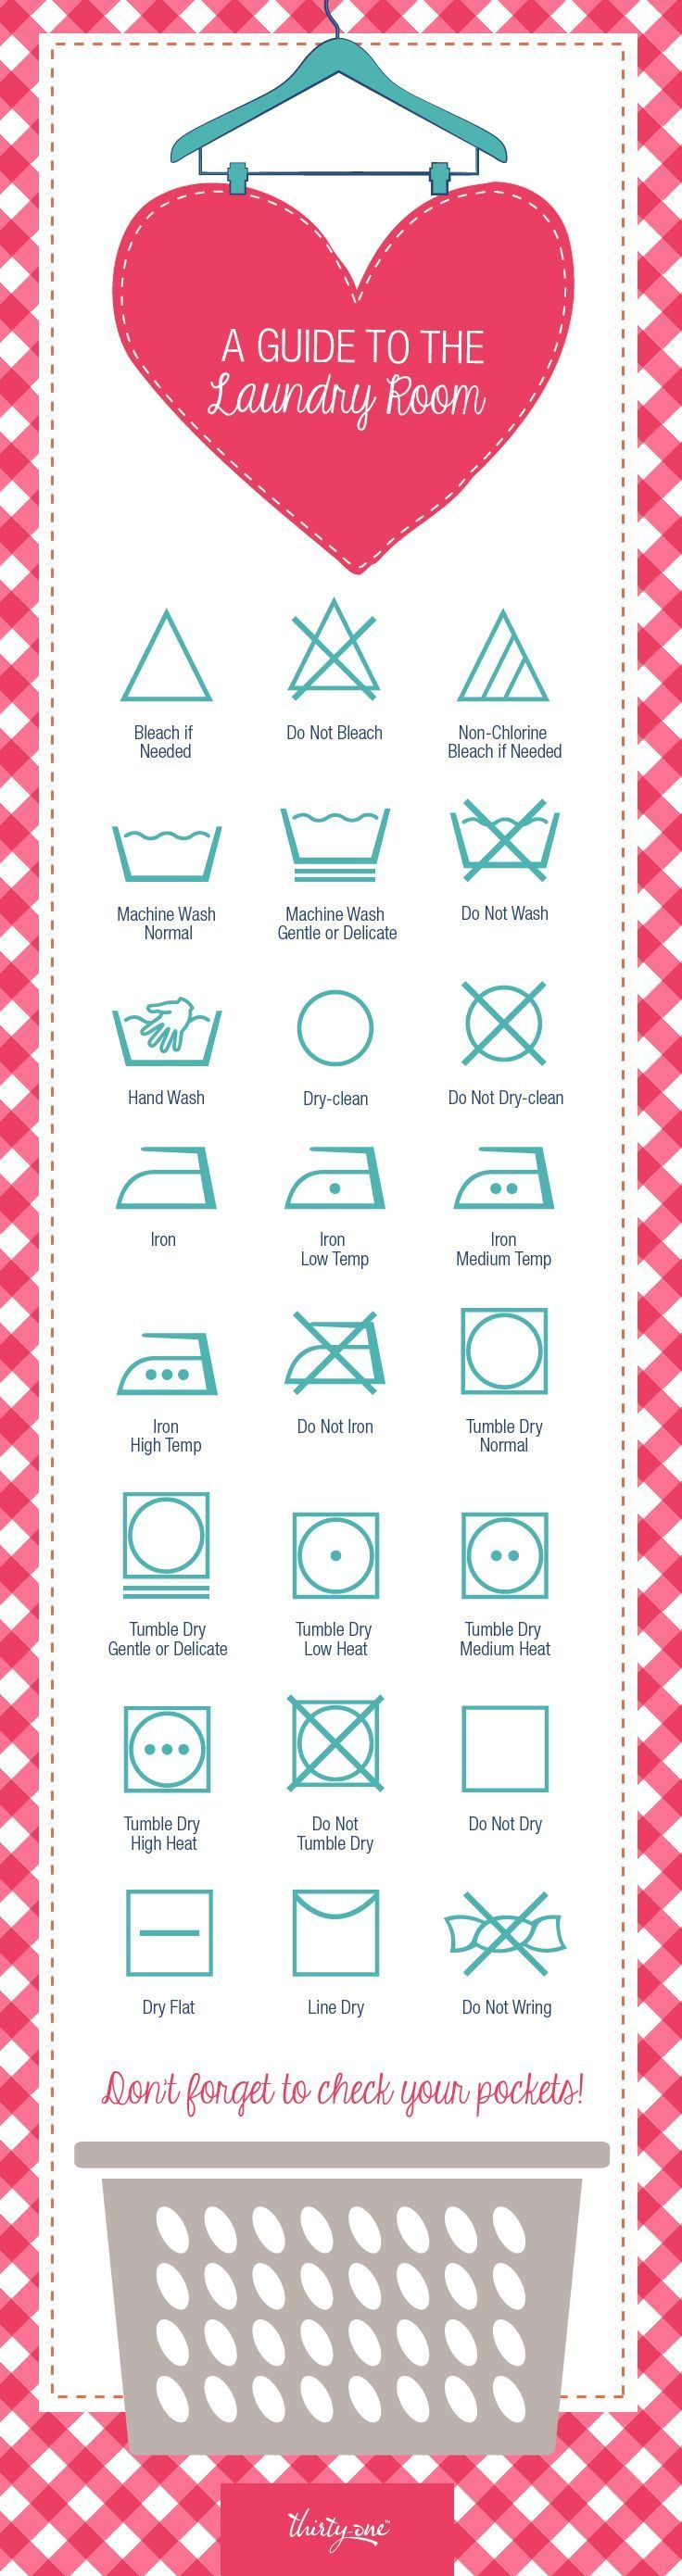 how to wash a purse in a washing machine